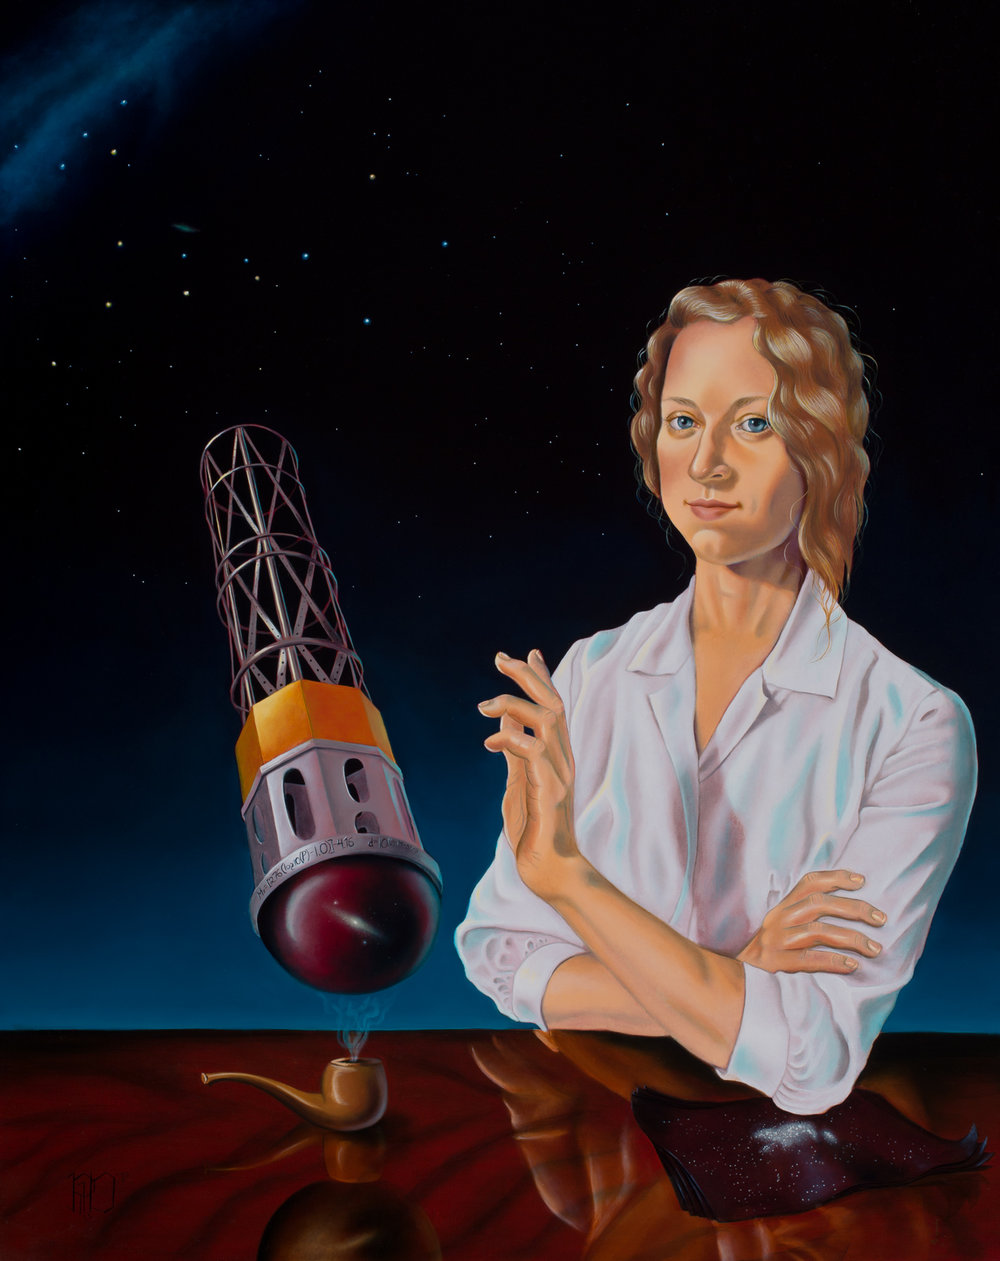 'Henrietta Swan Leavitt,' or 'This is not Edwin Hubble's Pipe'